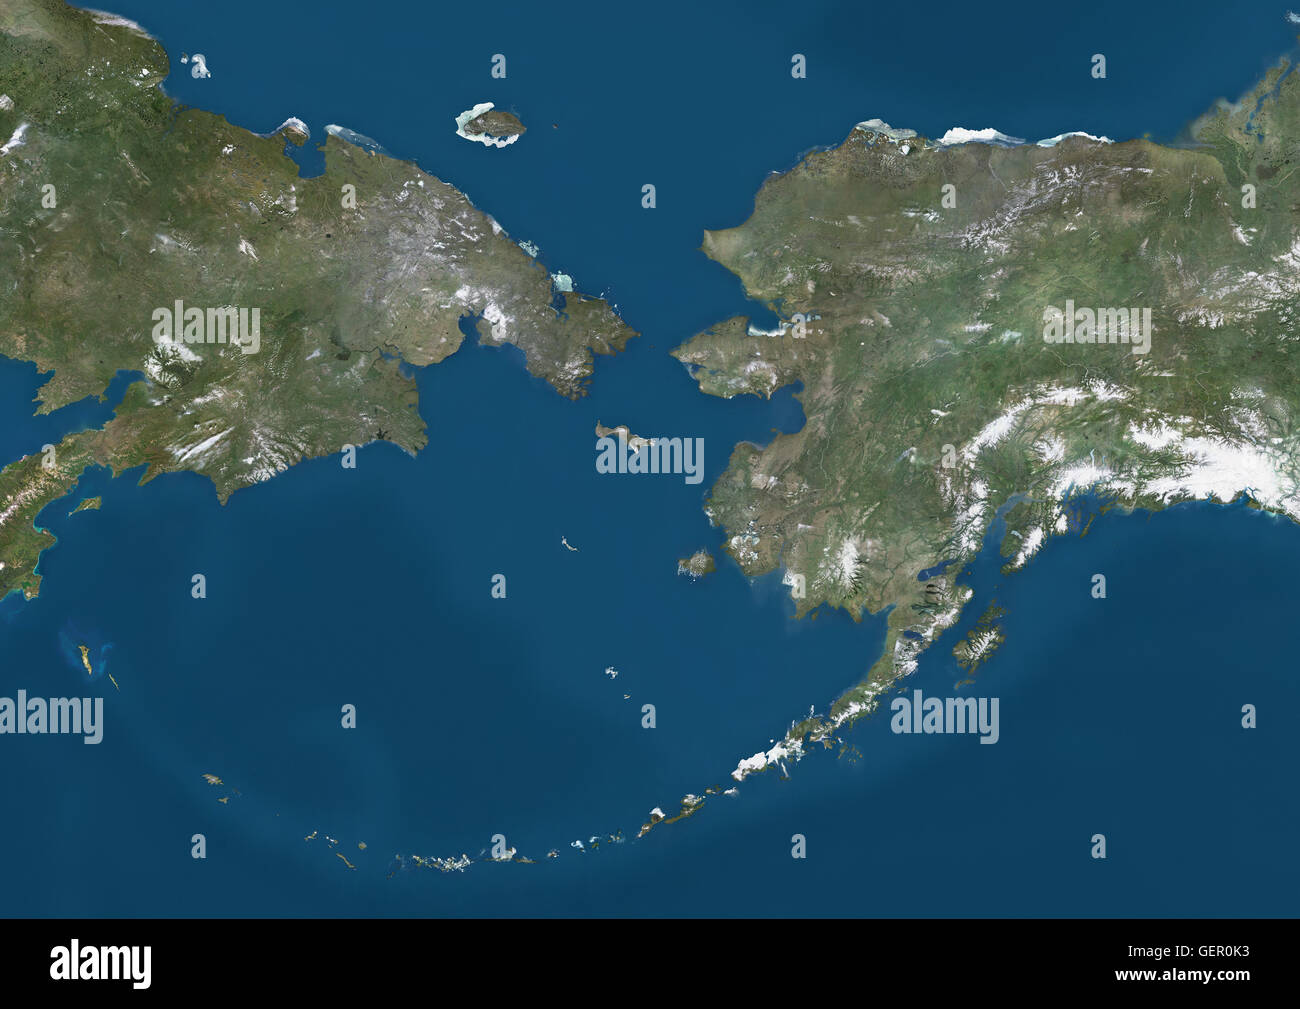 World Map Bering Strait.Bering Strait Map Stock Photos Bering Strait Map Stock Images Alamy